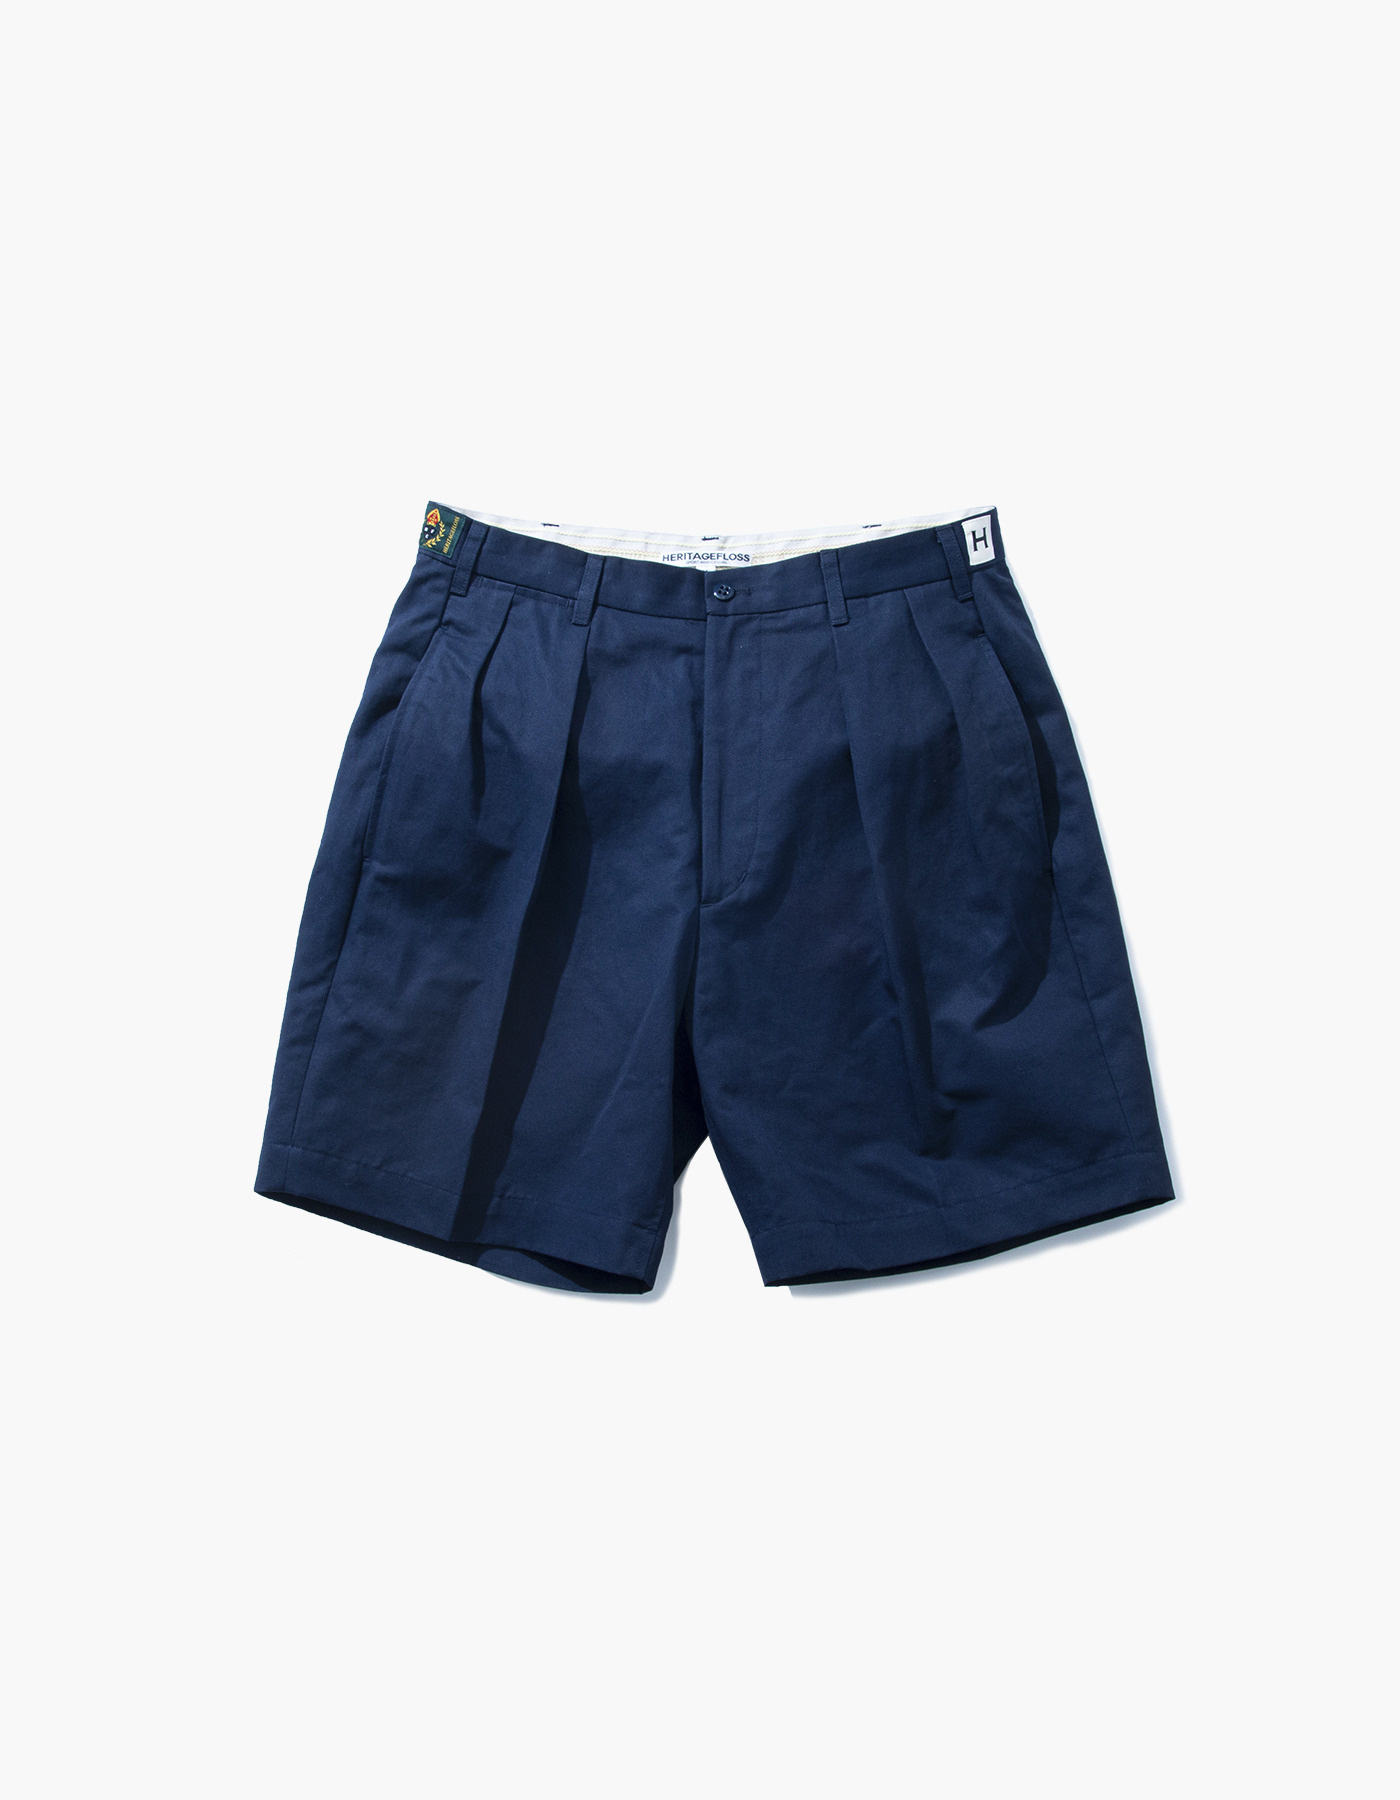 VINTAGE WASHER LINEN CHINO SHORTS / NAVY